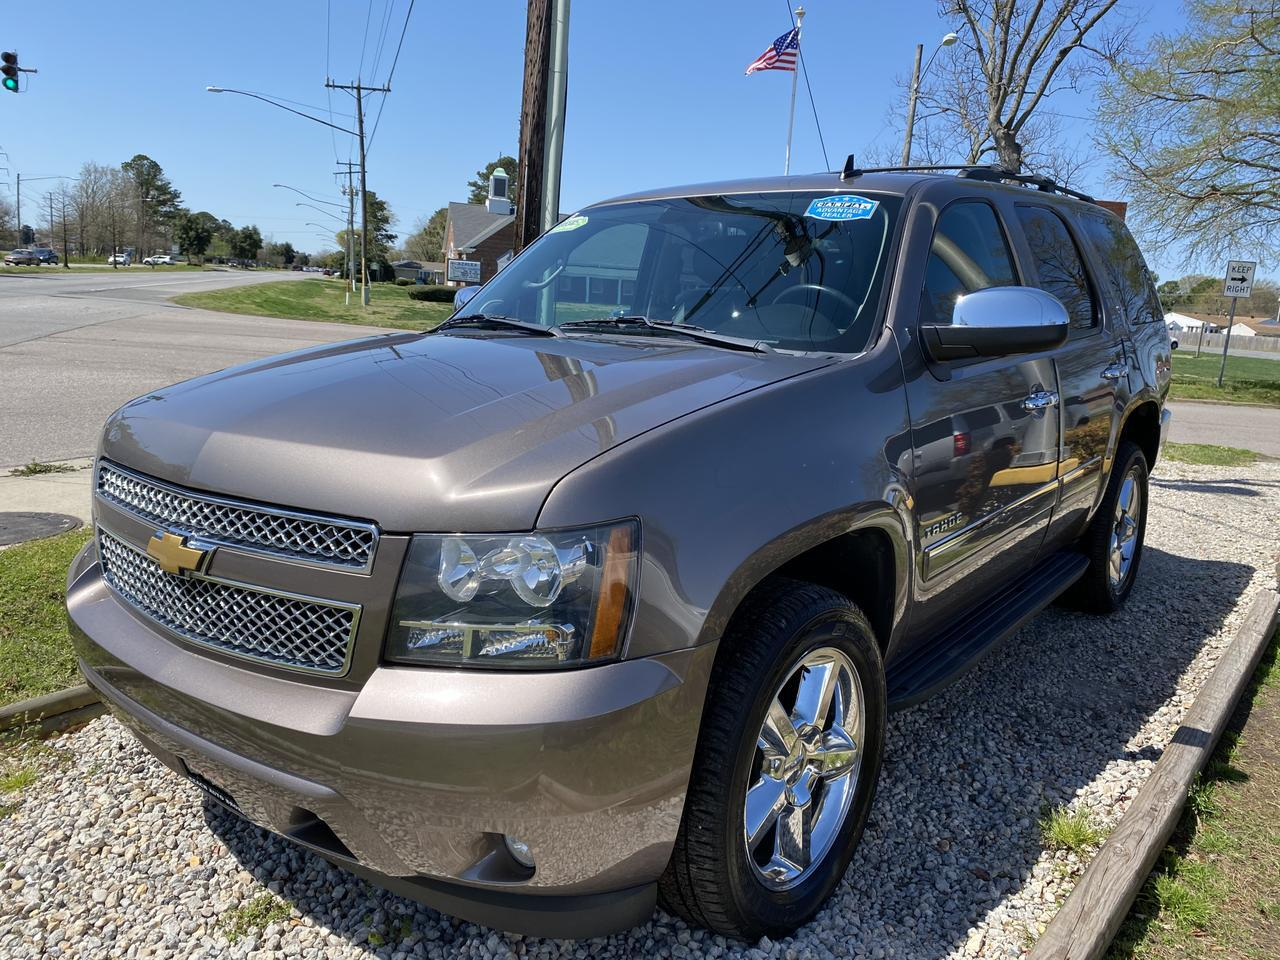 2013 CHEVROLET TAHOE LTZ 4X4, WARRANTY, LEATHER, NAV, HEATED/COOLED SEATS,  3RD ROW, SUNROOF, DVD PLAYER,1 OWNER! Norfolk VA